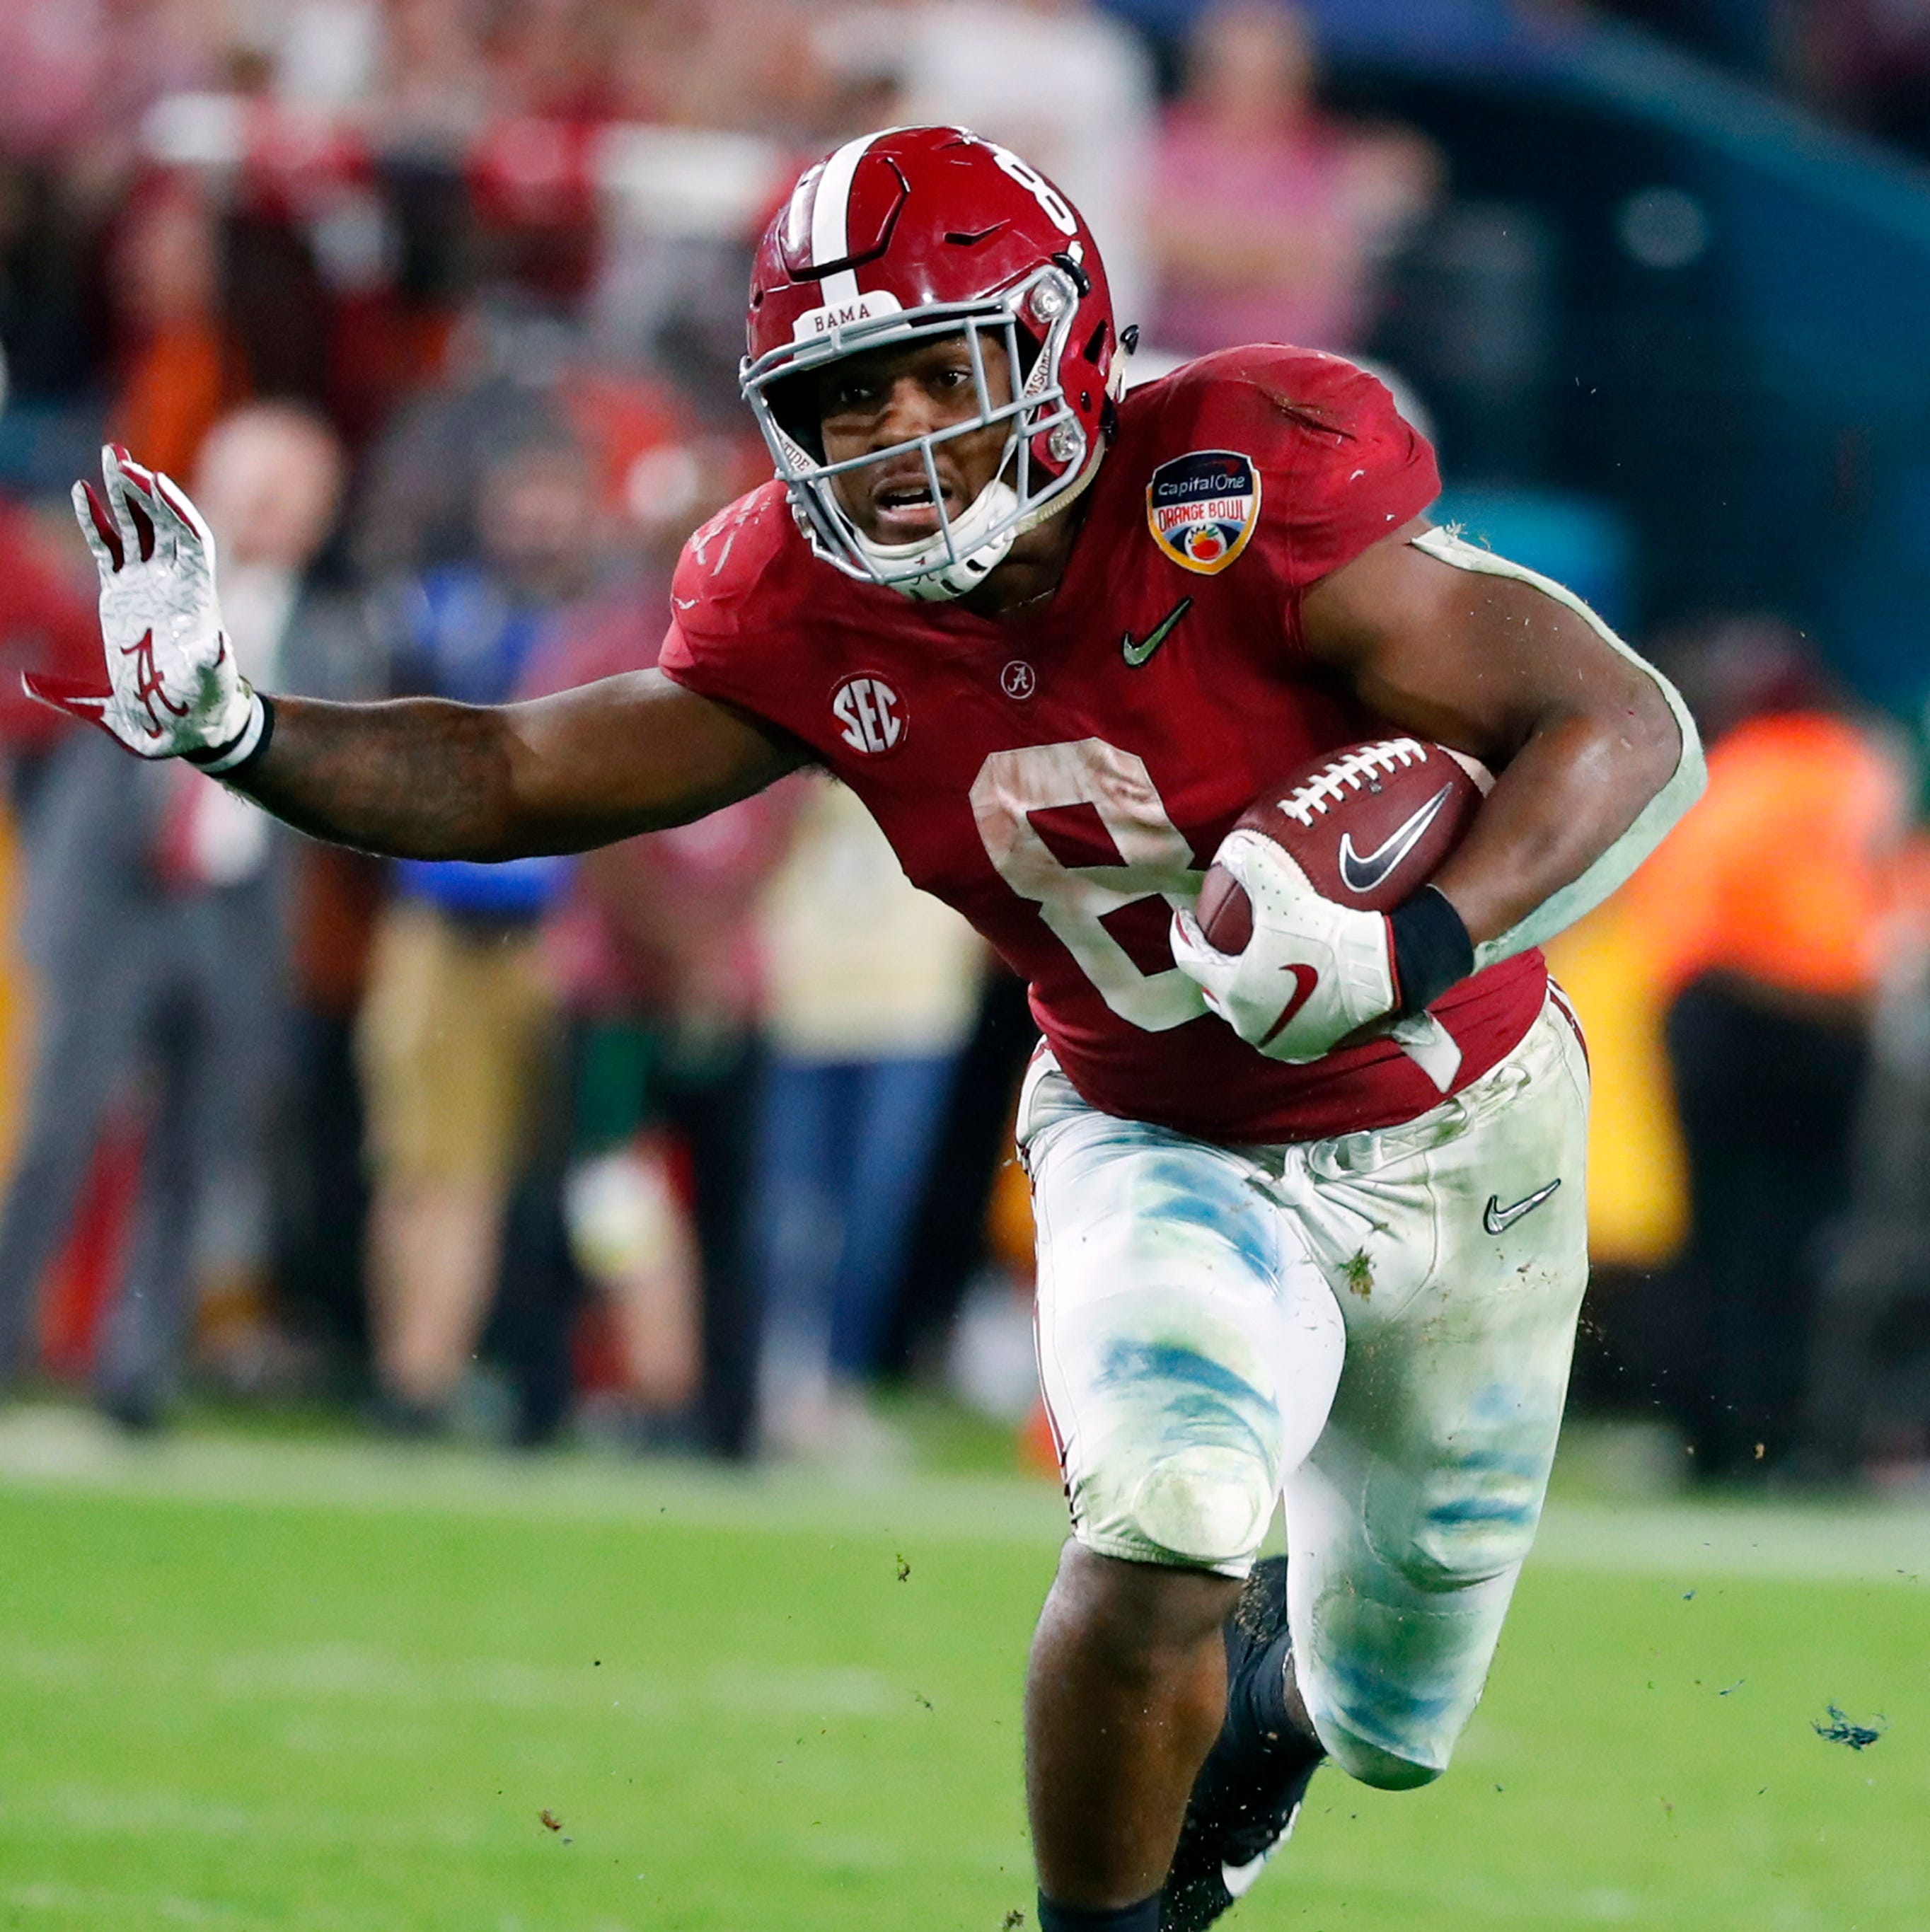 7 players the Eagles could take in NFL draft's 1st round, from least likely to most